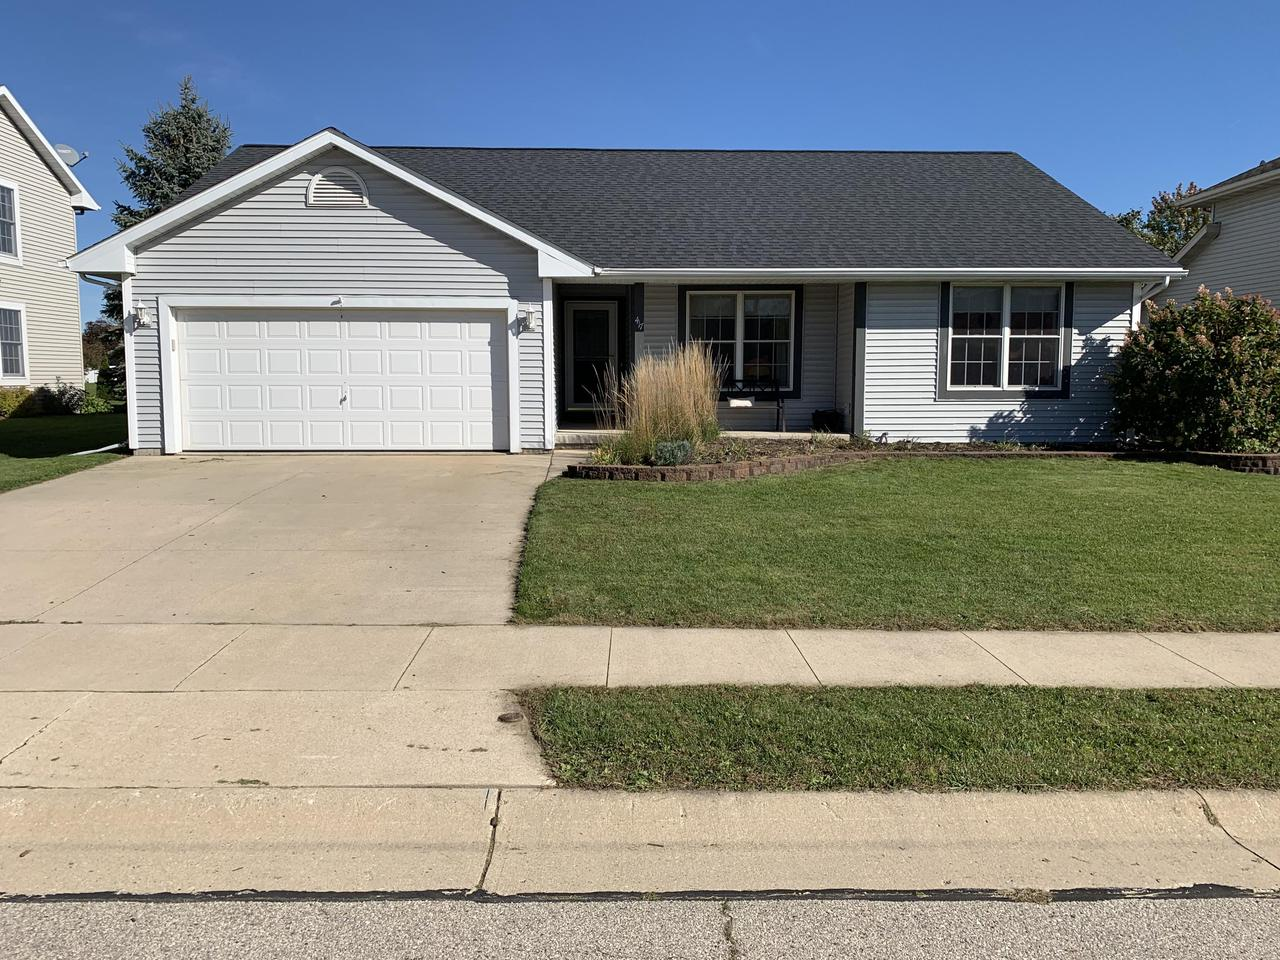 Well maintained ranch located in the desirable Settlement Ridge subdivision. Open concept floor plan with 3 bedrooms and 2 full bathrooms on the main level and a 4th bedroom with egress window on the lower level. Convenient first floor laundry and all appliances are included. Warm yourself this winter next to the gas fireplace. Low maintenance exterior with a newer roof installed in 2017. Call me today to schedule your private showing.